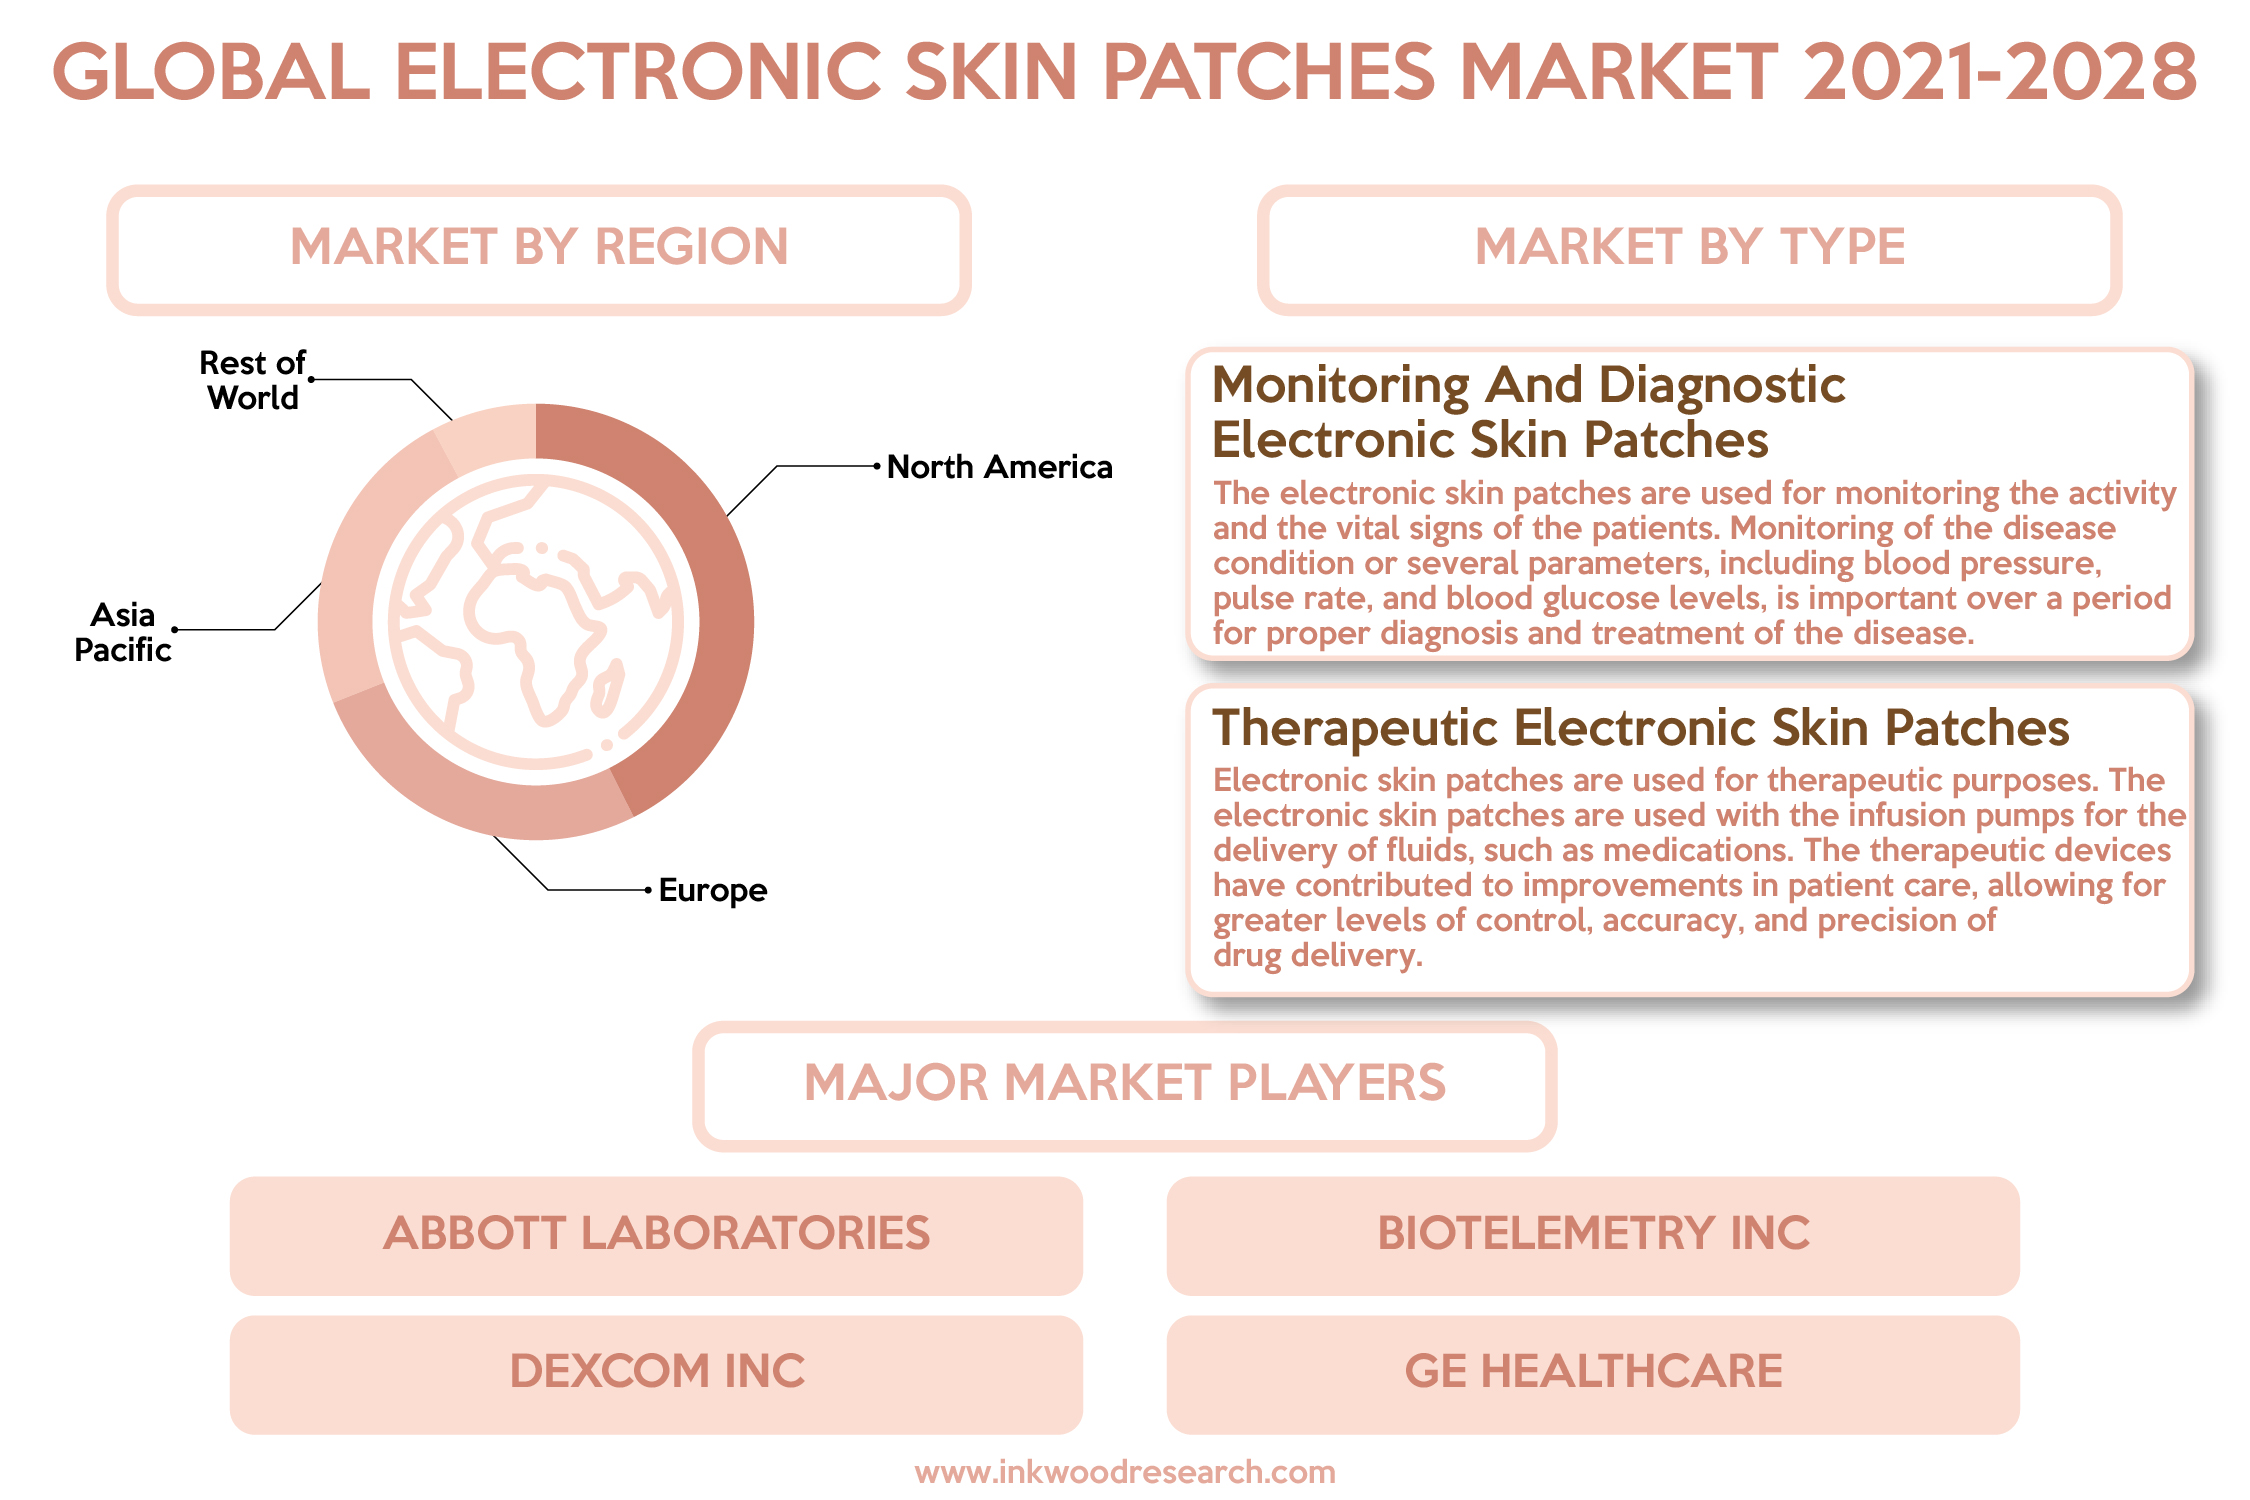 Prevailing Cases of Chronic Diseases to surge the Global Electronic Skin Patches Market